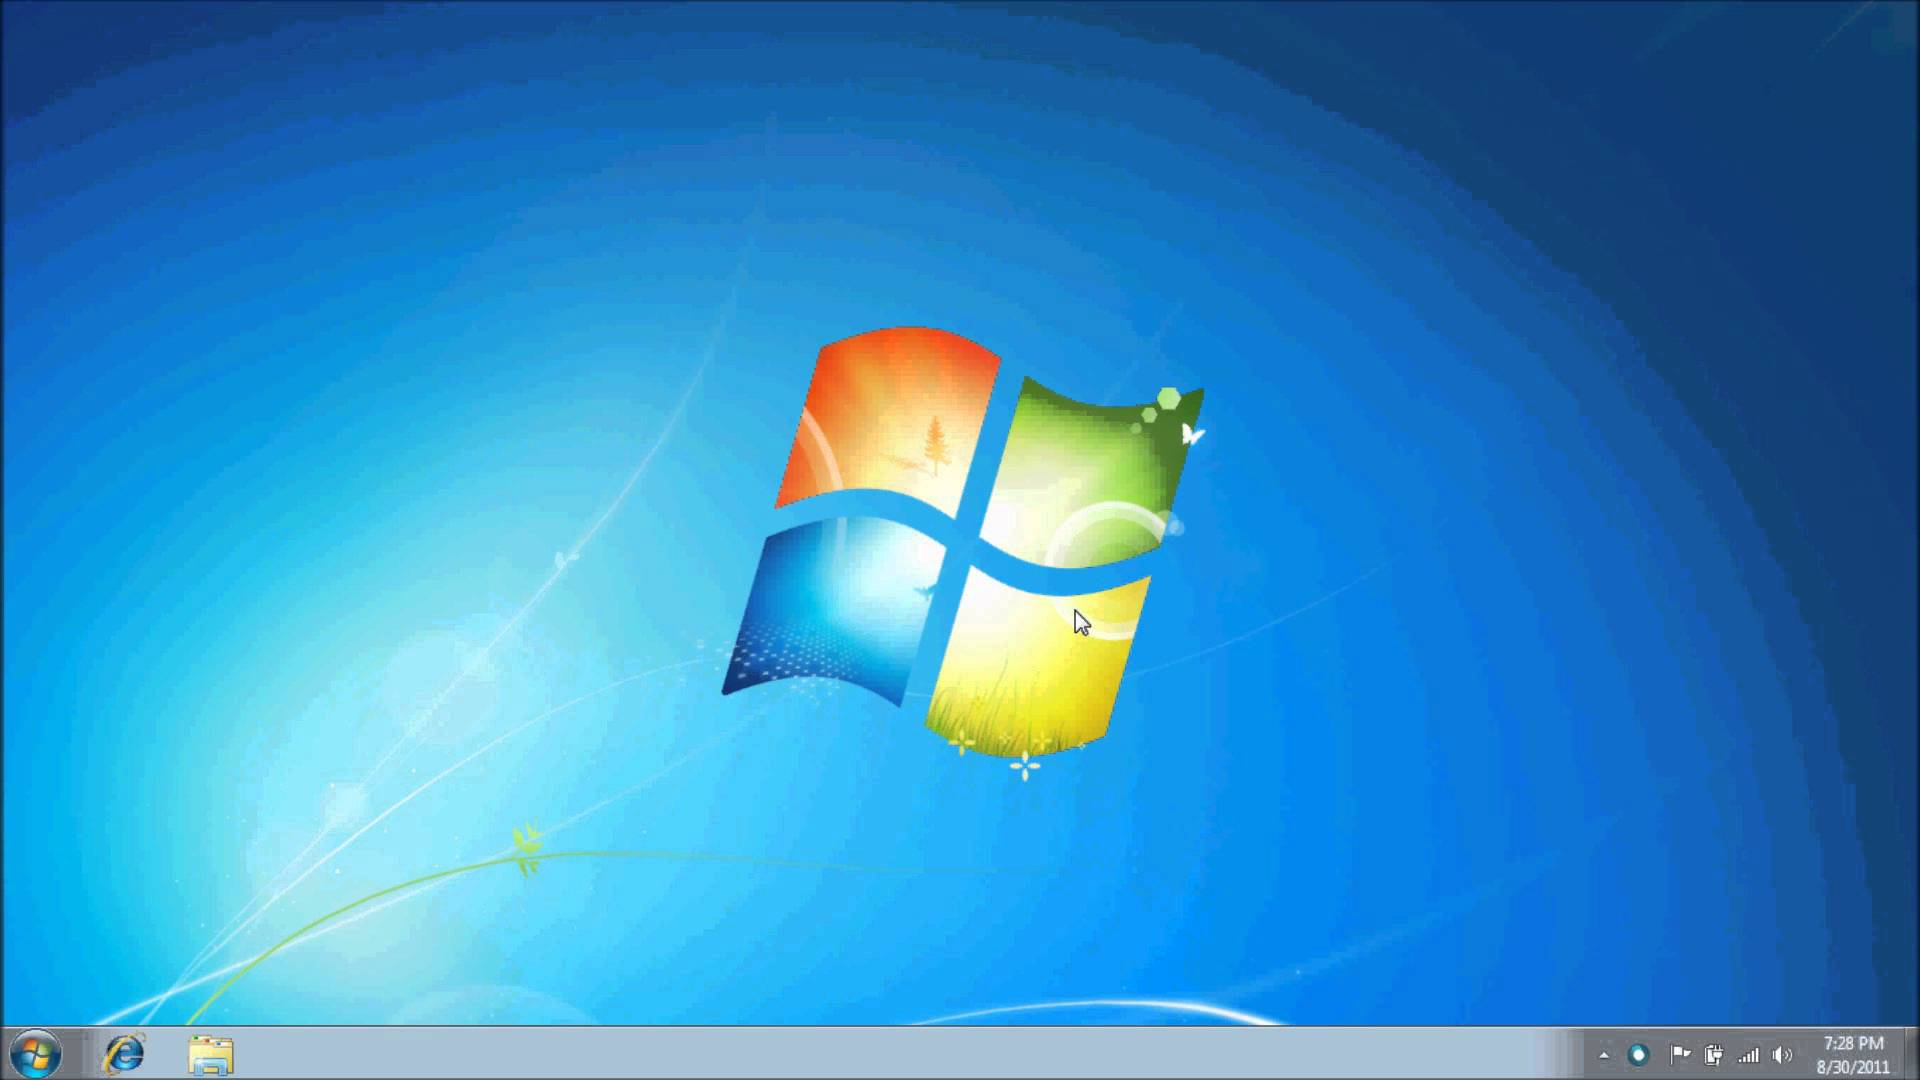 13 Restore Windows Vista Desktop Icons Images